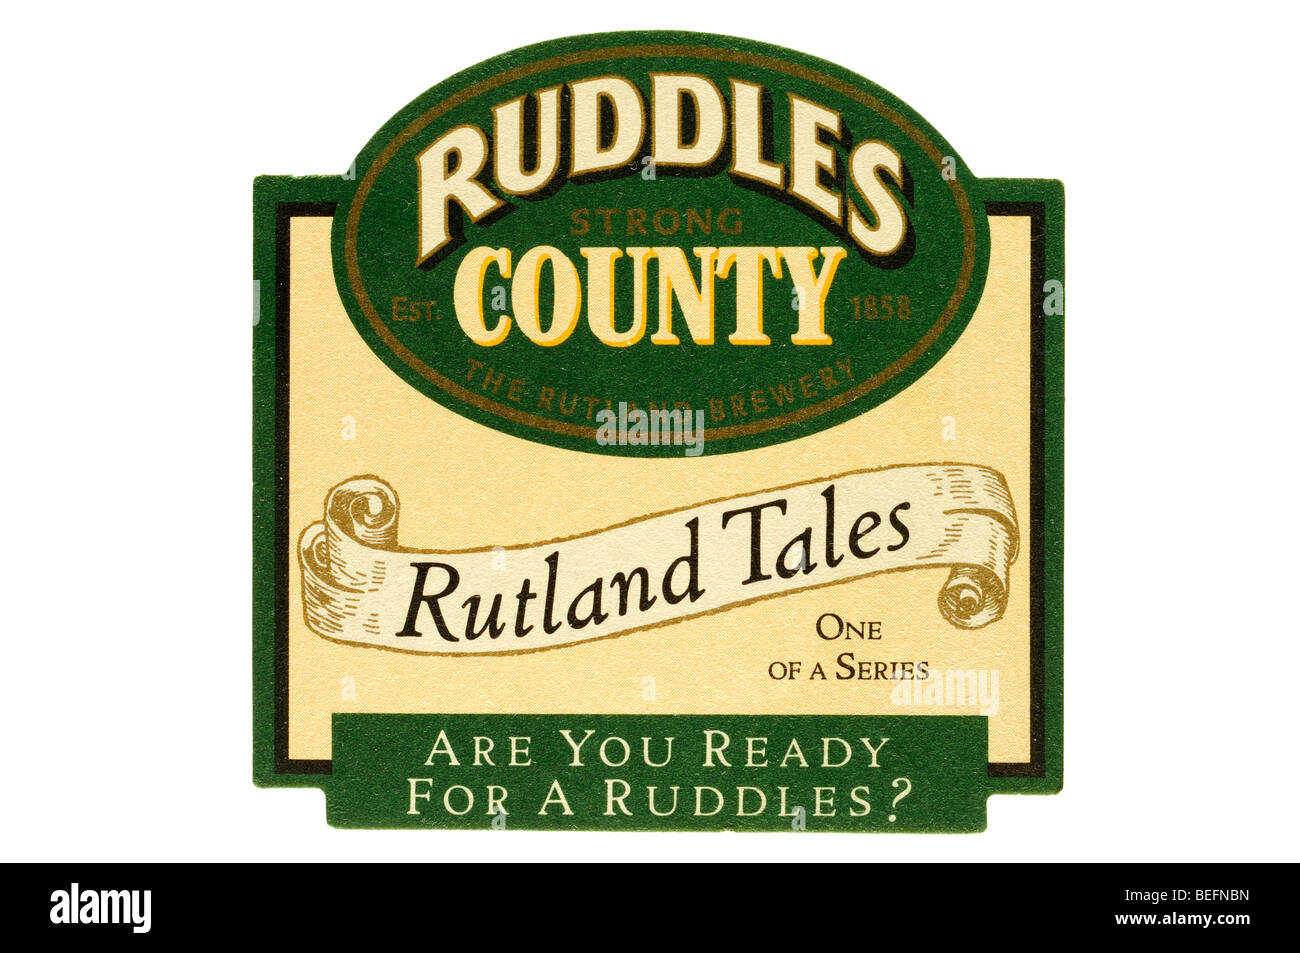 ruddles strong county the rutland brewery est 1858 rutland tales one of a series are you rady for a ruddles - Stock Image